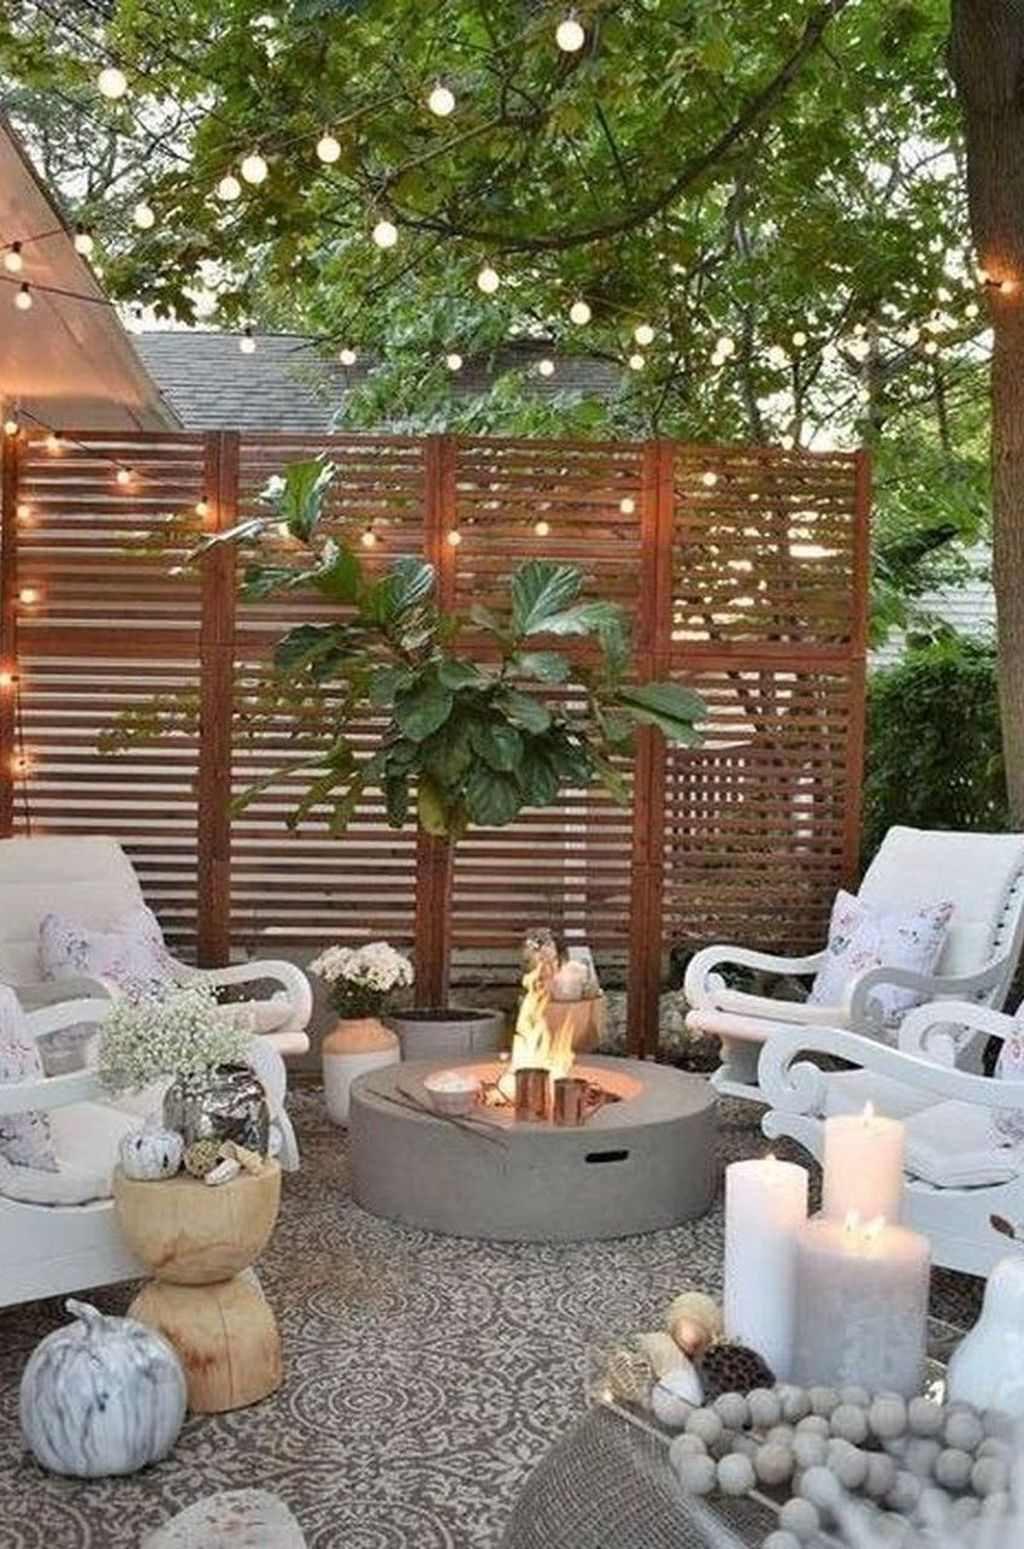 32 awesome small backyard design ideas that will make your on awesome backyard garden landscaping ideas that looks amazing id=25138